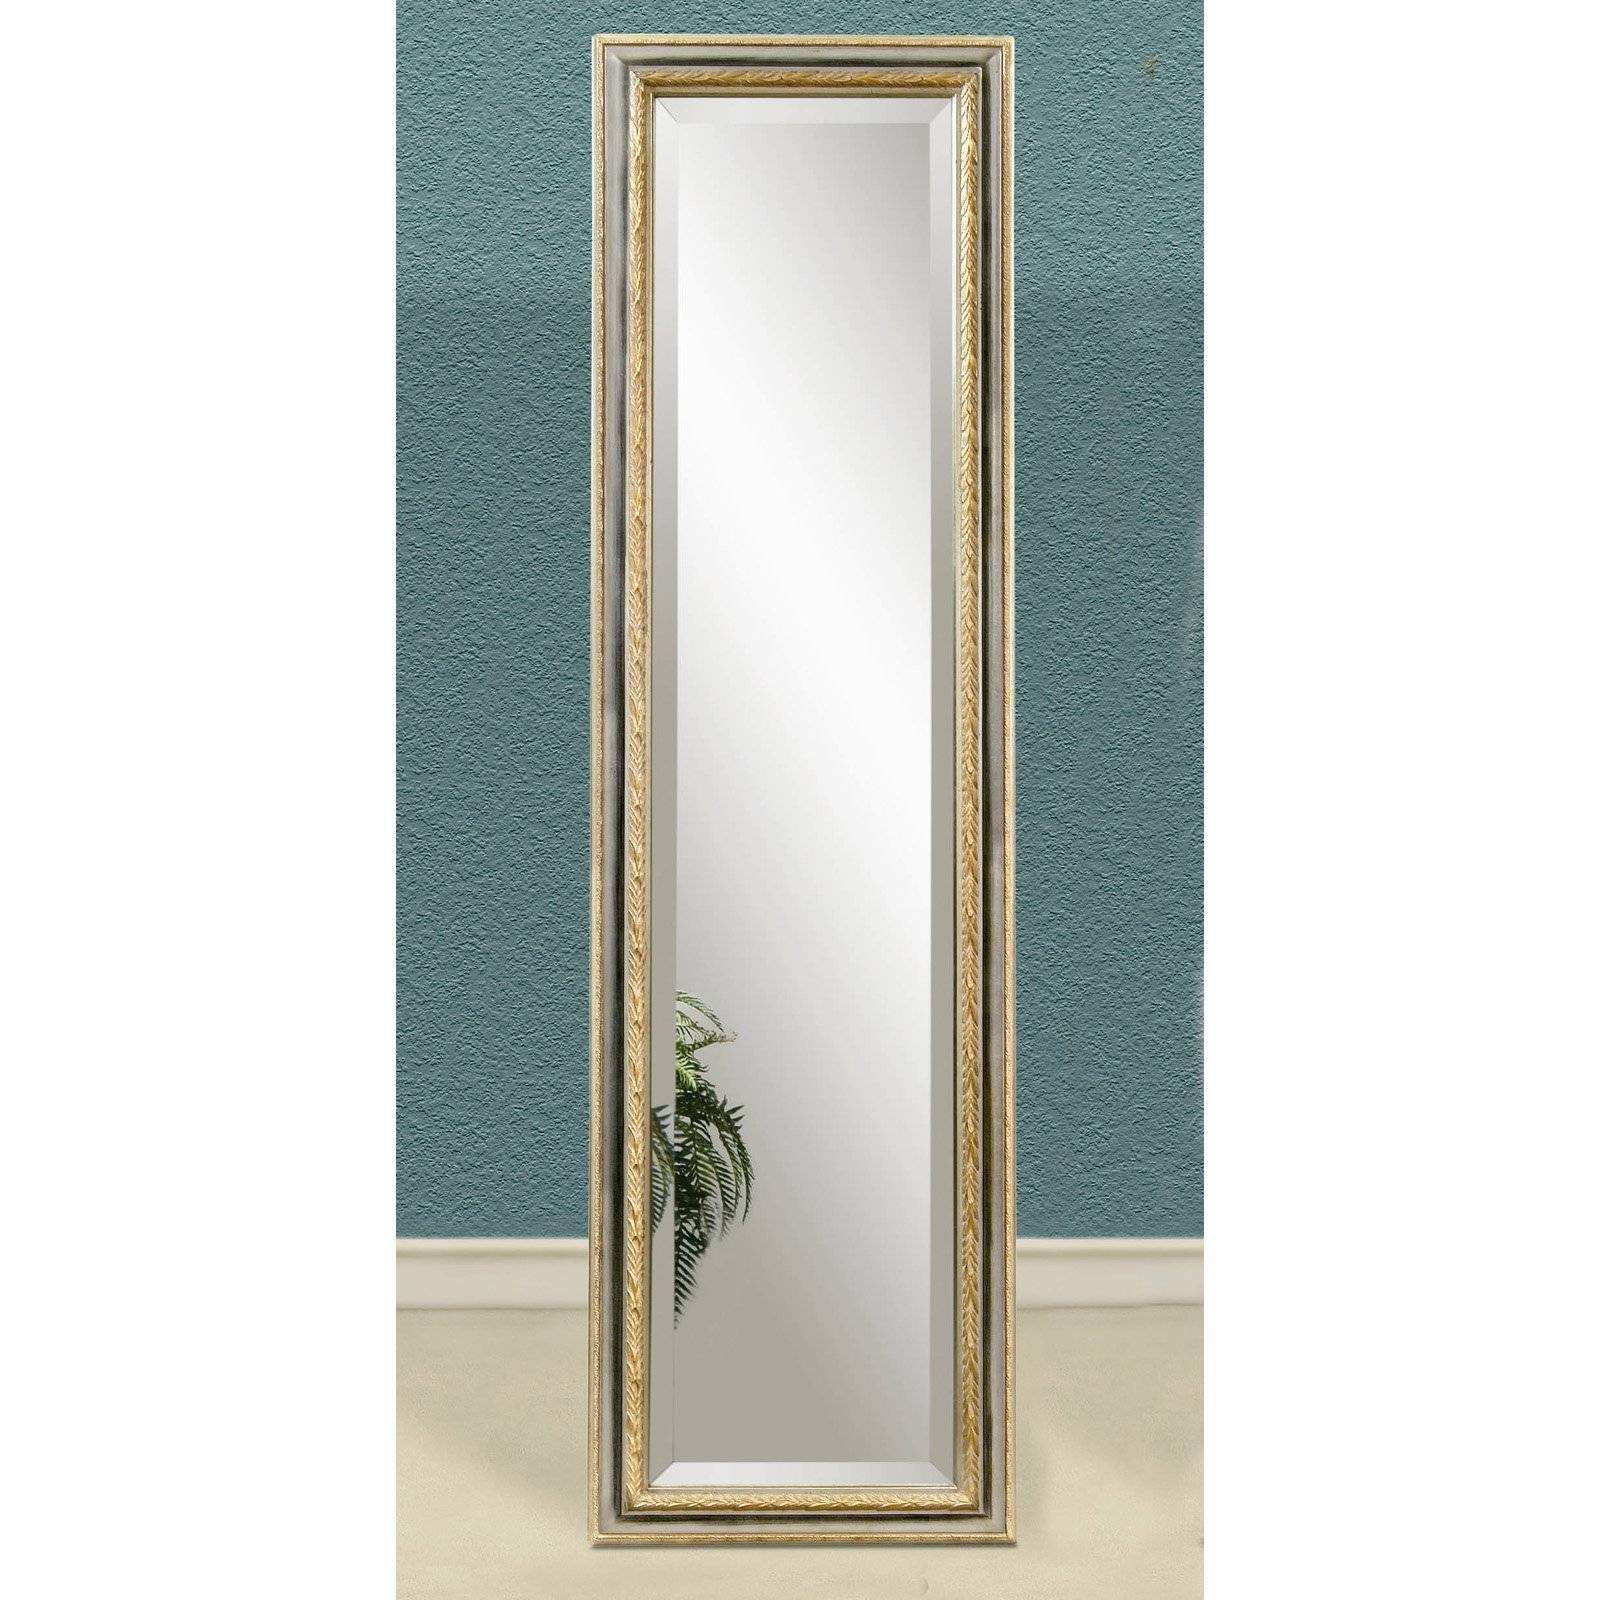 Silver & Gold Full Length Cheval Floor Mirror – 18W X 64H In Regarding Full Length Silver Mirrors (View 25 of 25)